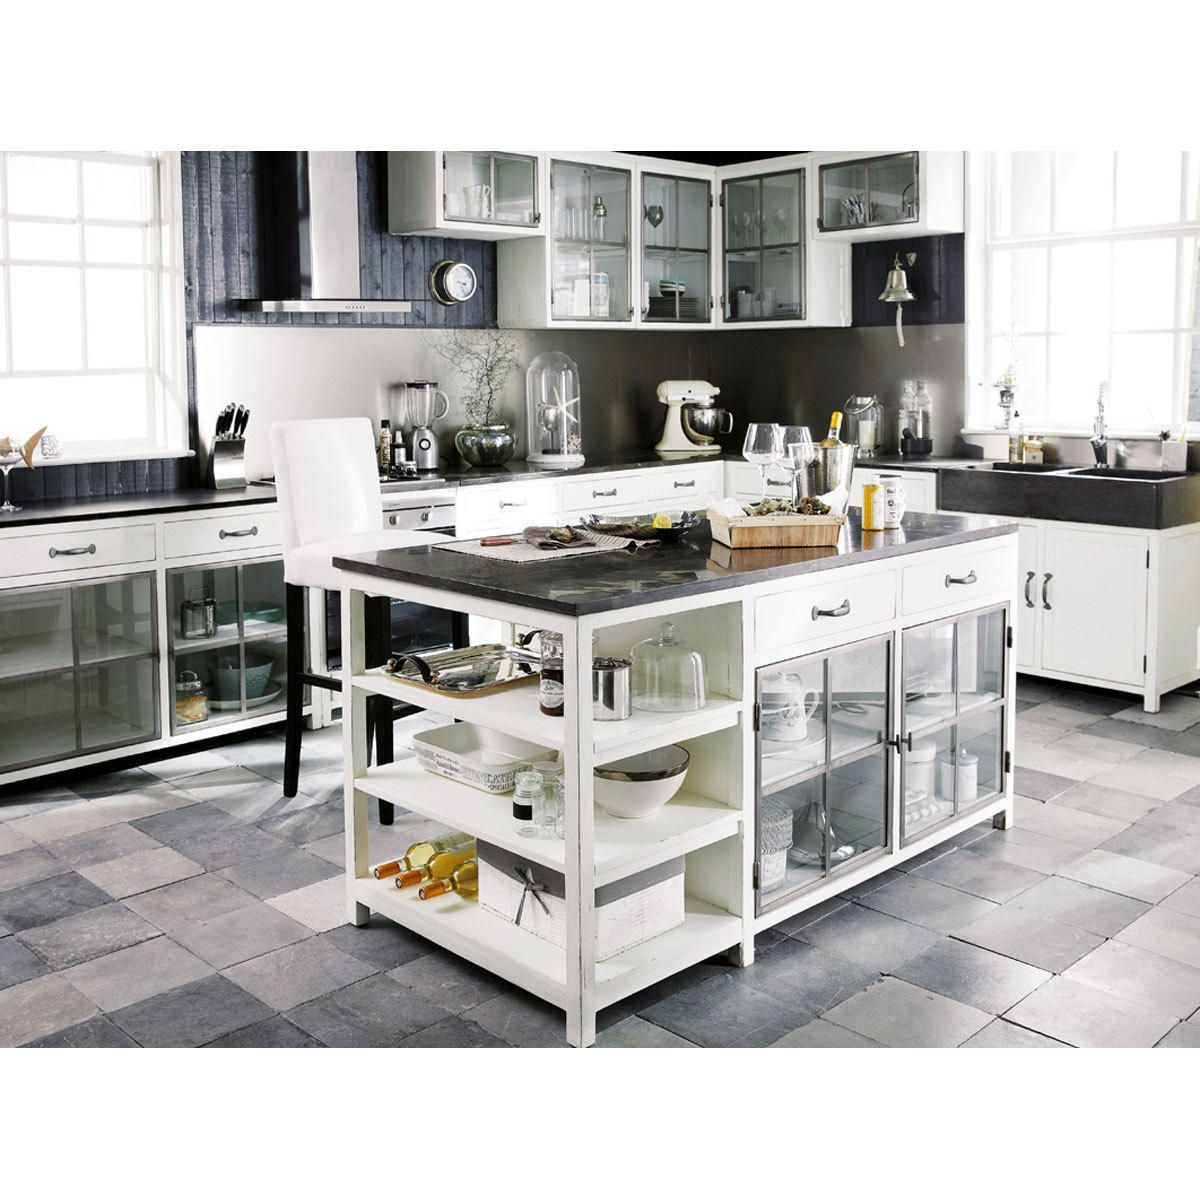 Maison Du Monde Küche Sonstige Möbel In 2019 New House Kitchen Island With